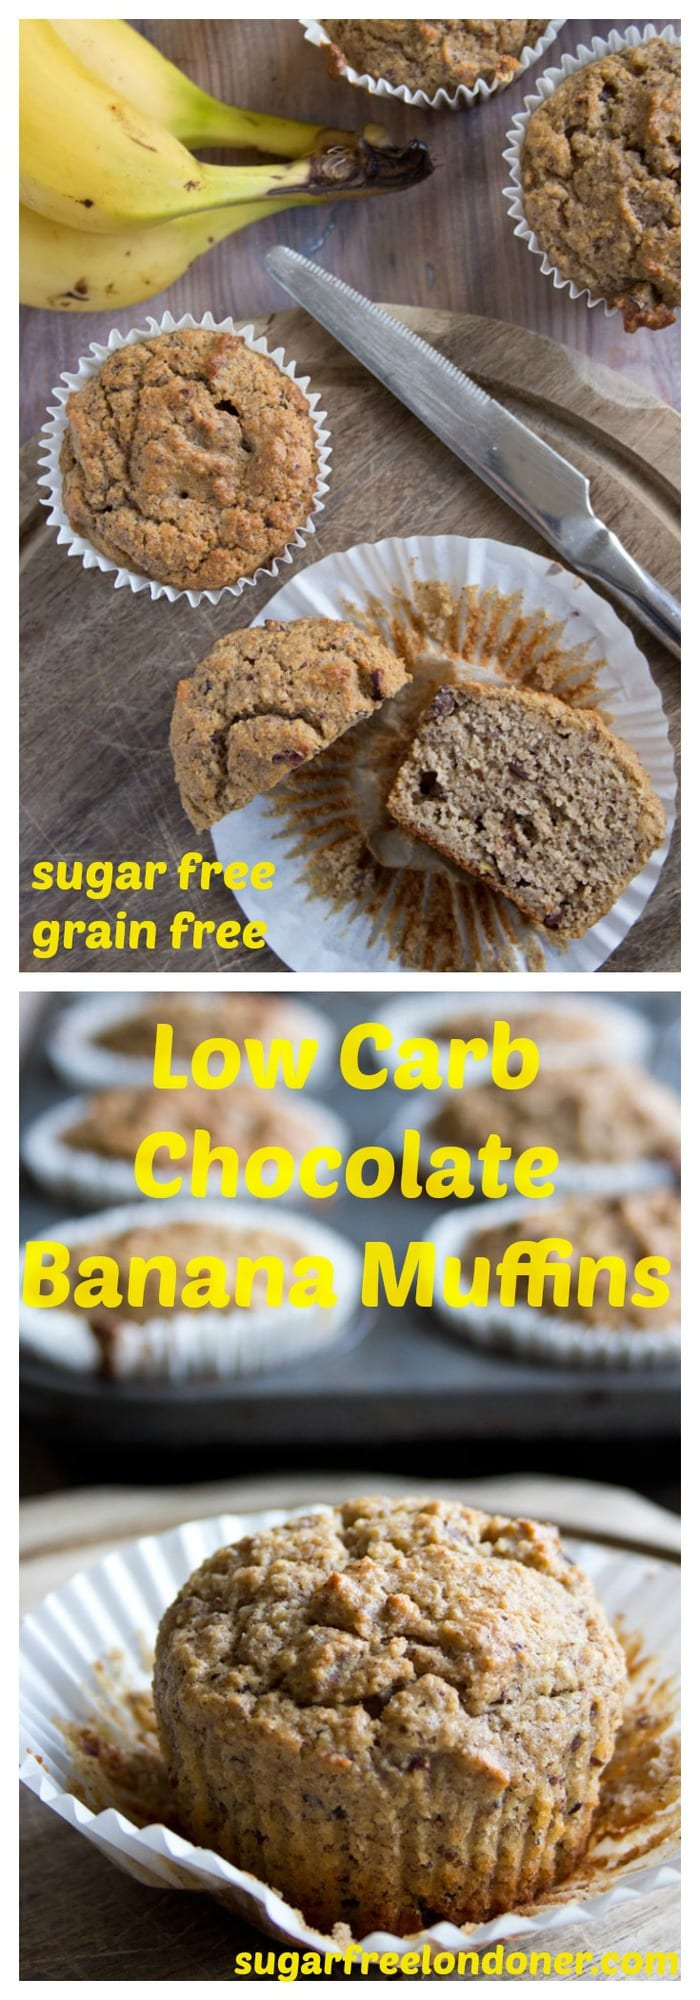 A fabulously healthy treat: These delicious Low Carb Chocolate Banana Muffins are grain free, sugar free and seriously nutrient-dense. This is feel-good snacking taken to the next level.